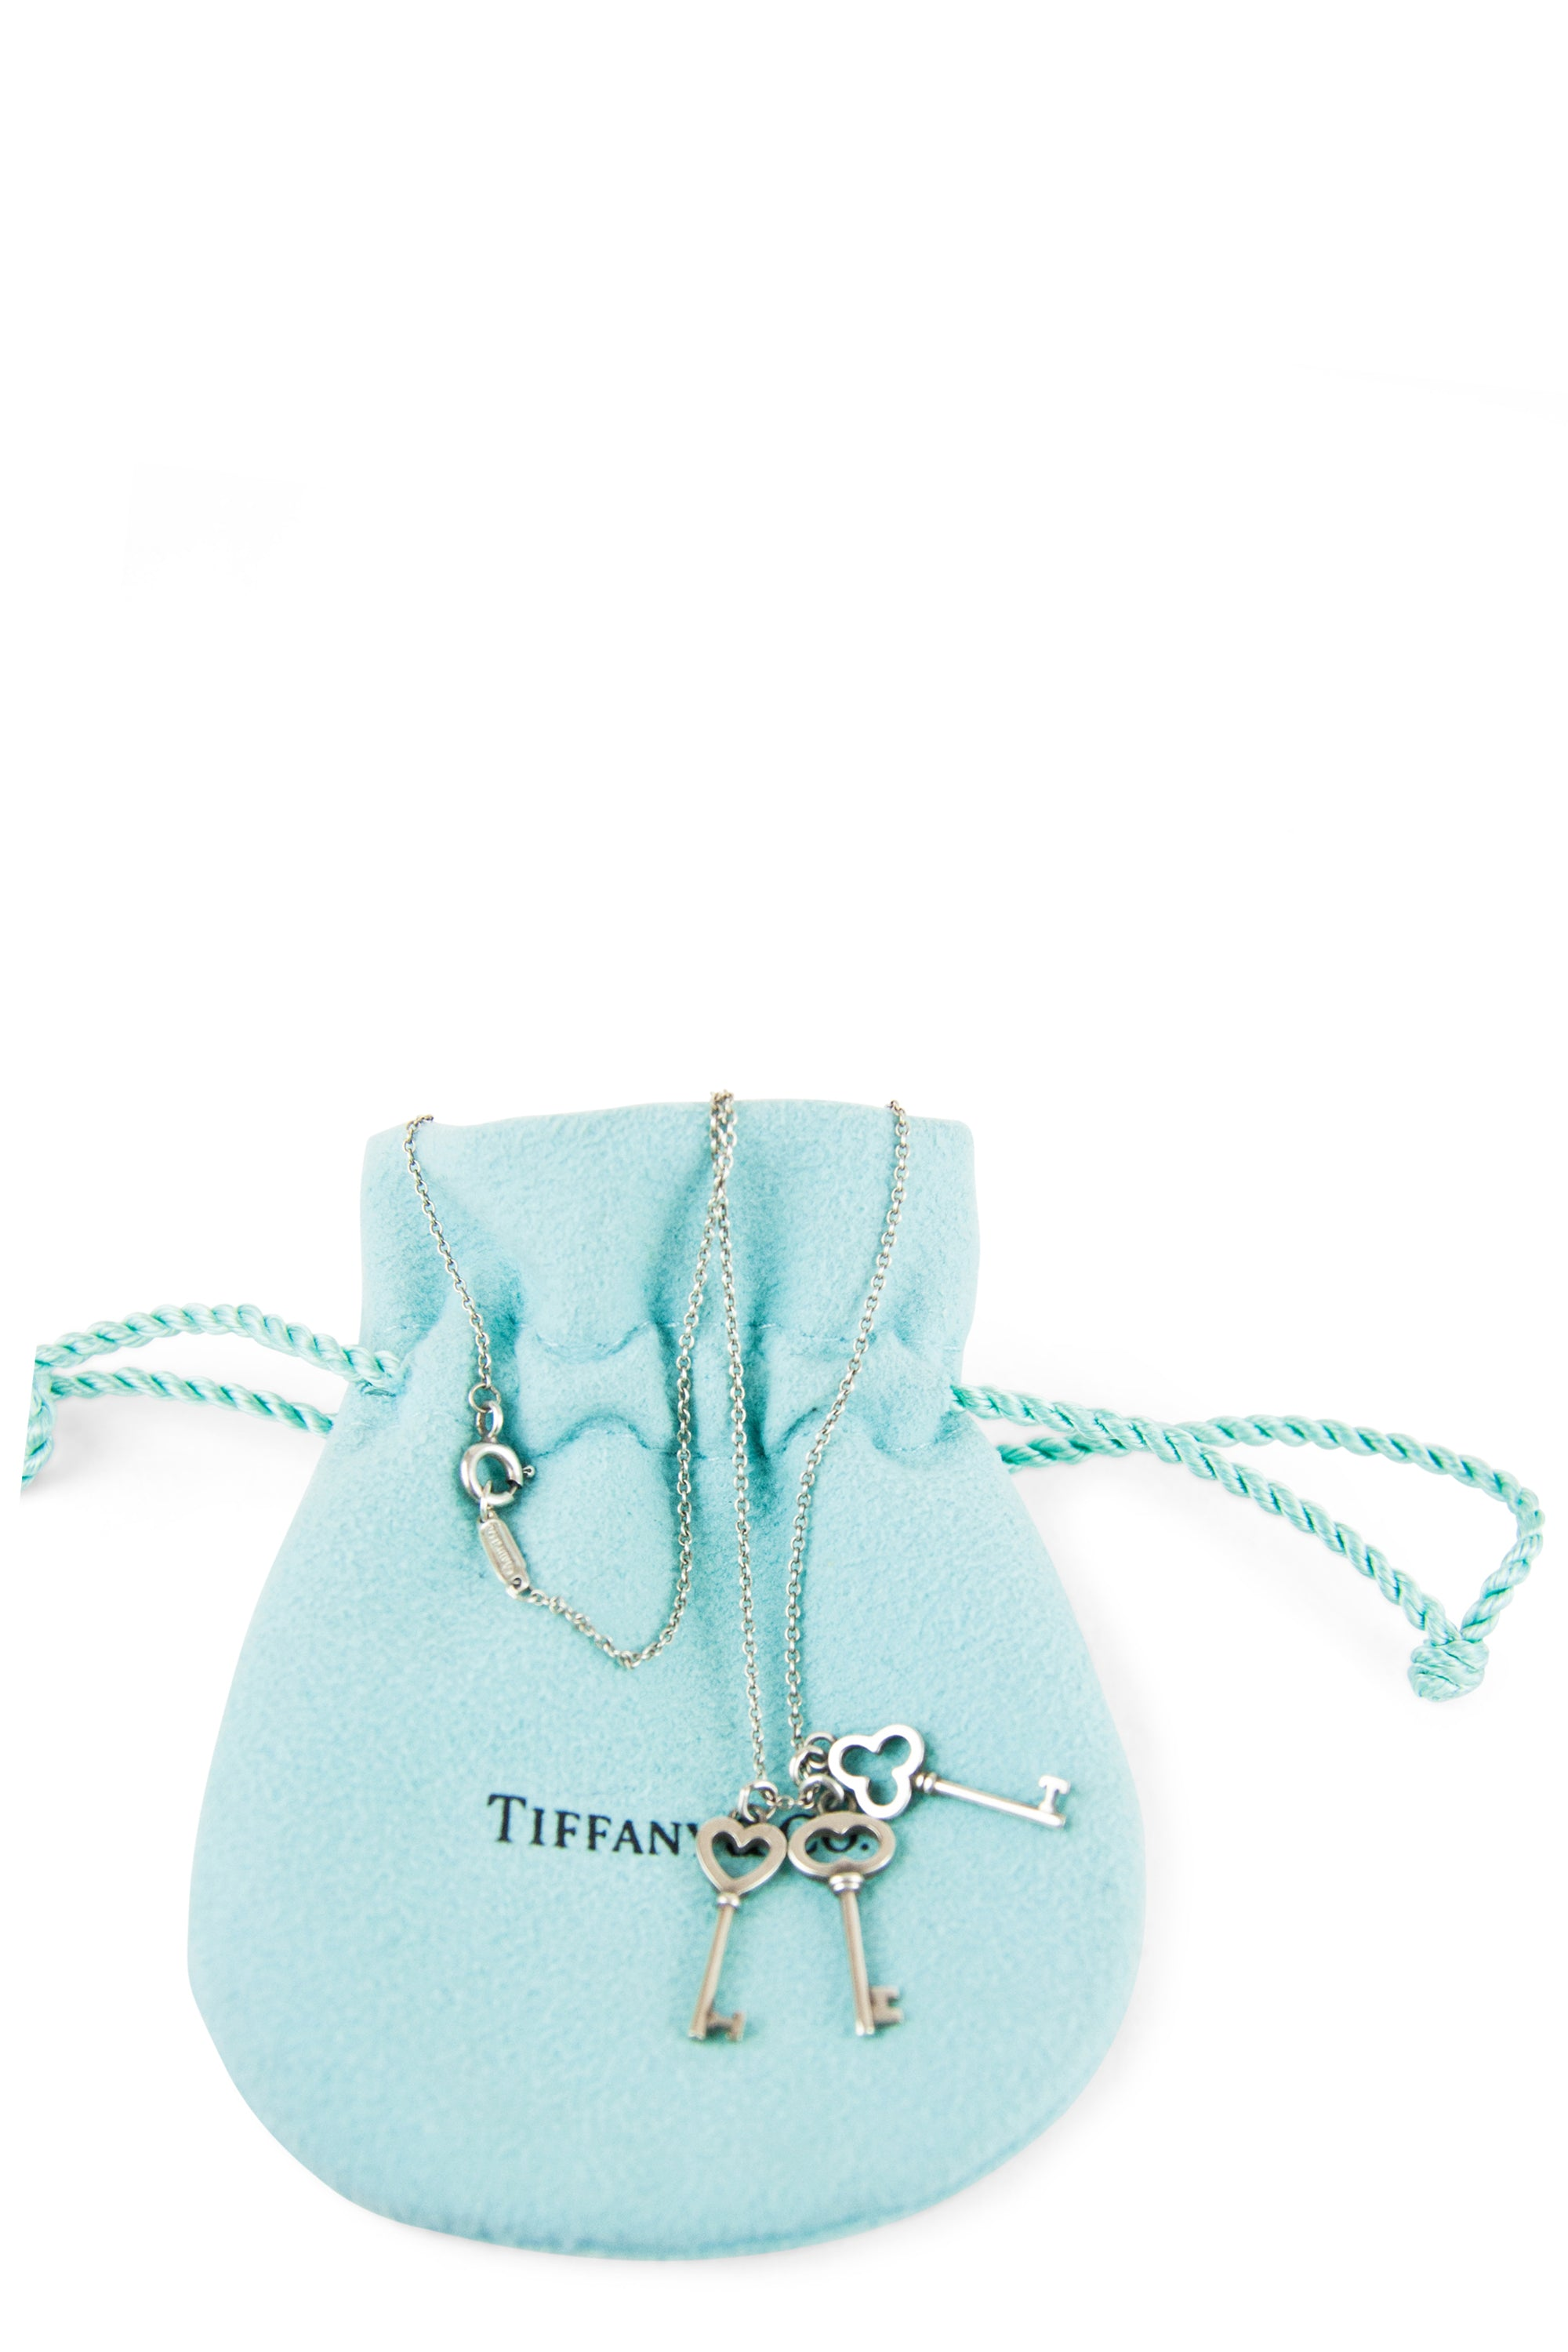 TIFFANY&CO.  3 Keys Halskette